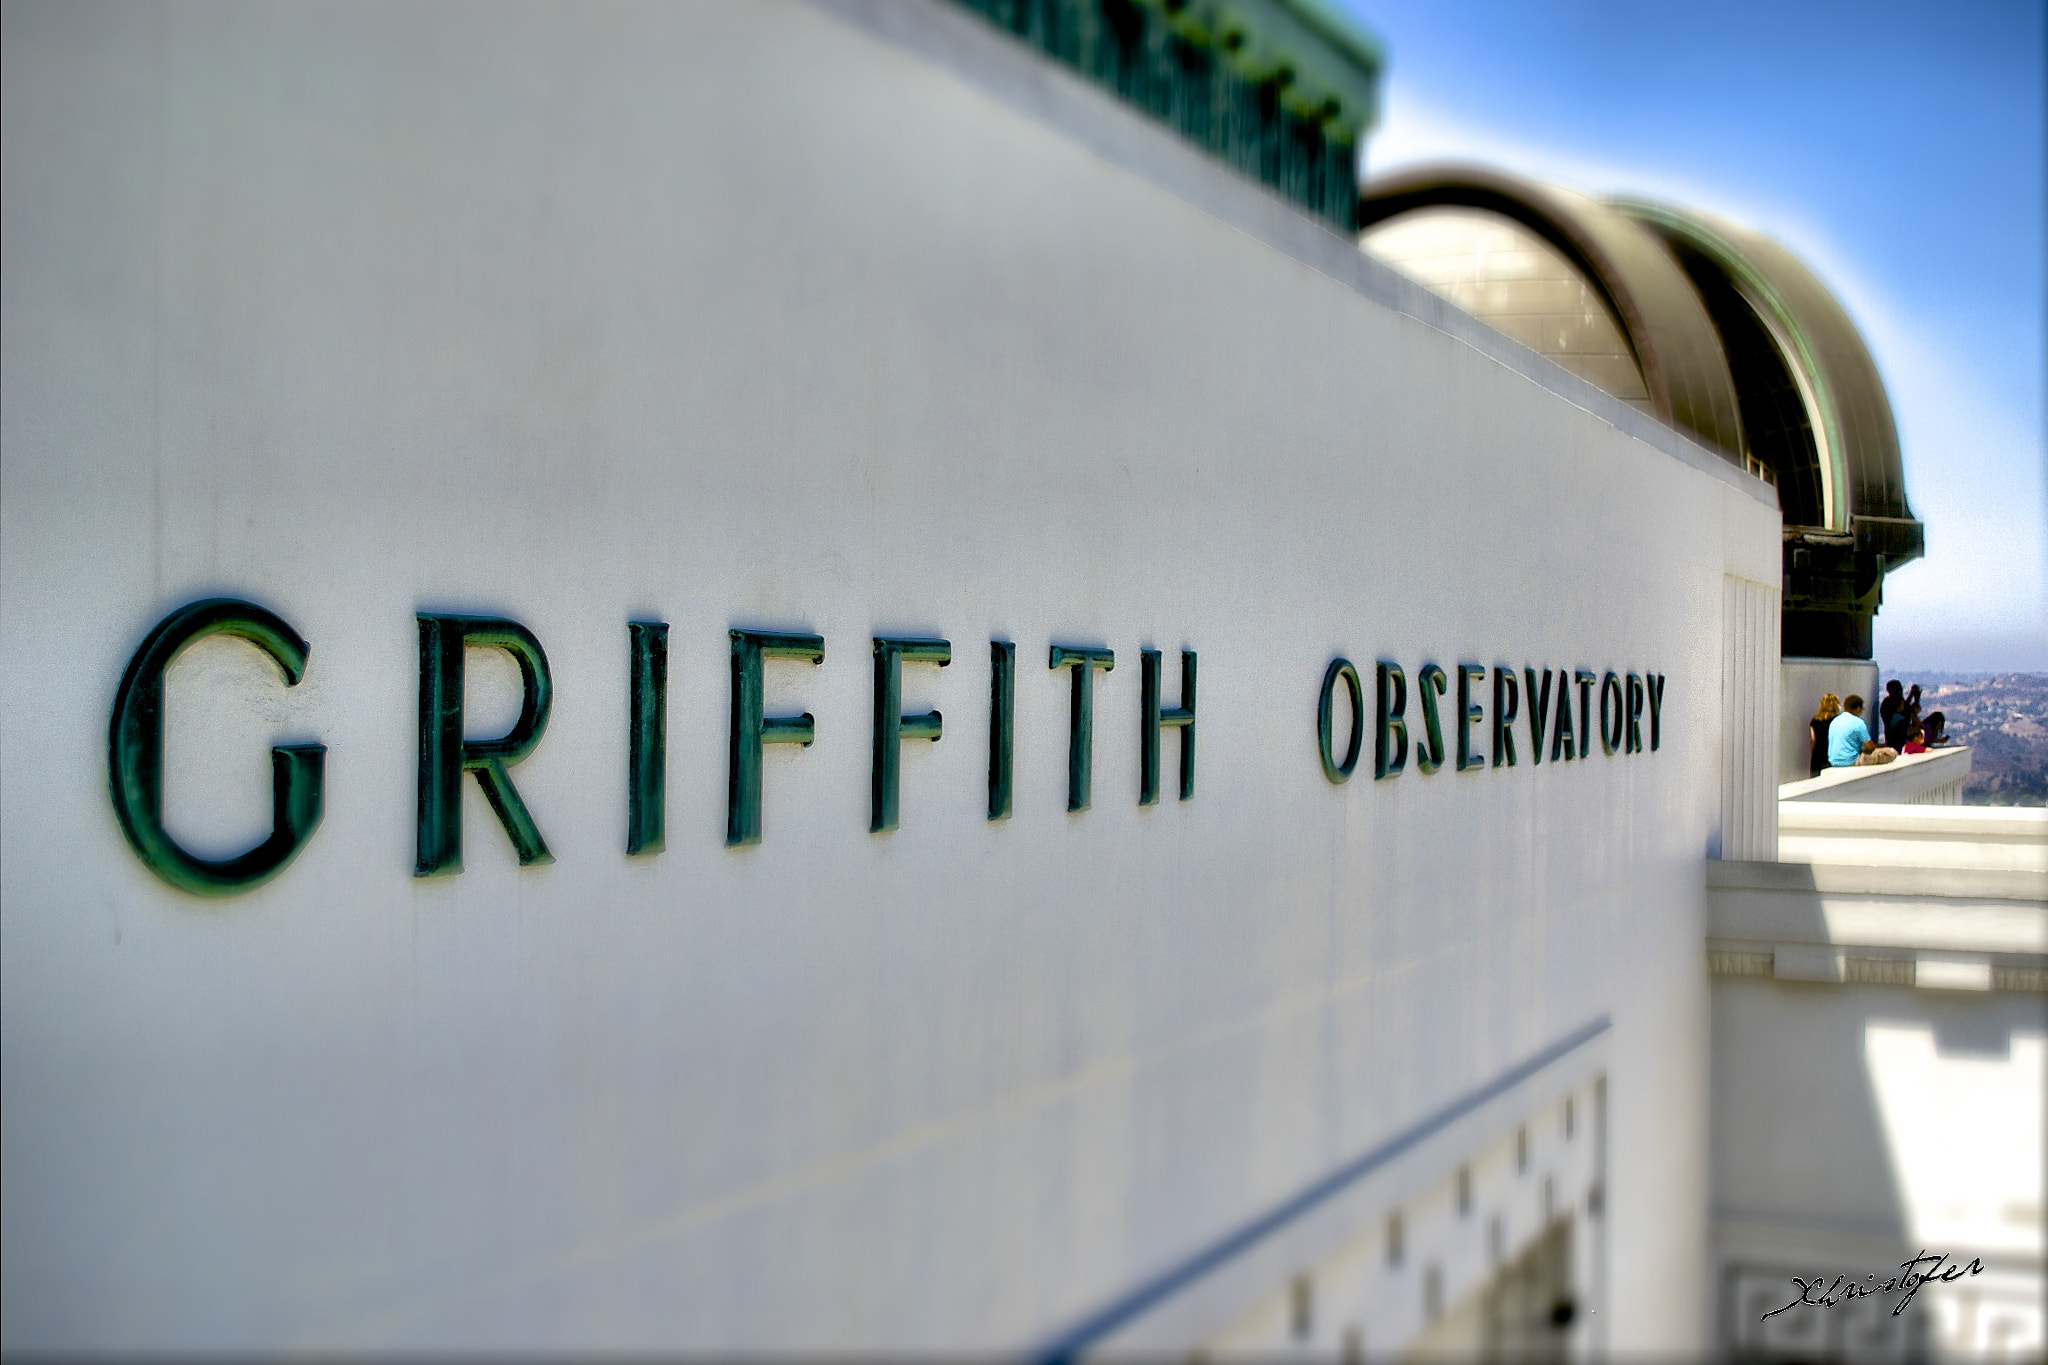 Photograph Griffith Observatory Main by Xhristofer Le'Ur on 500px